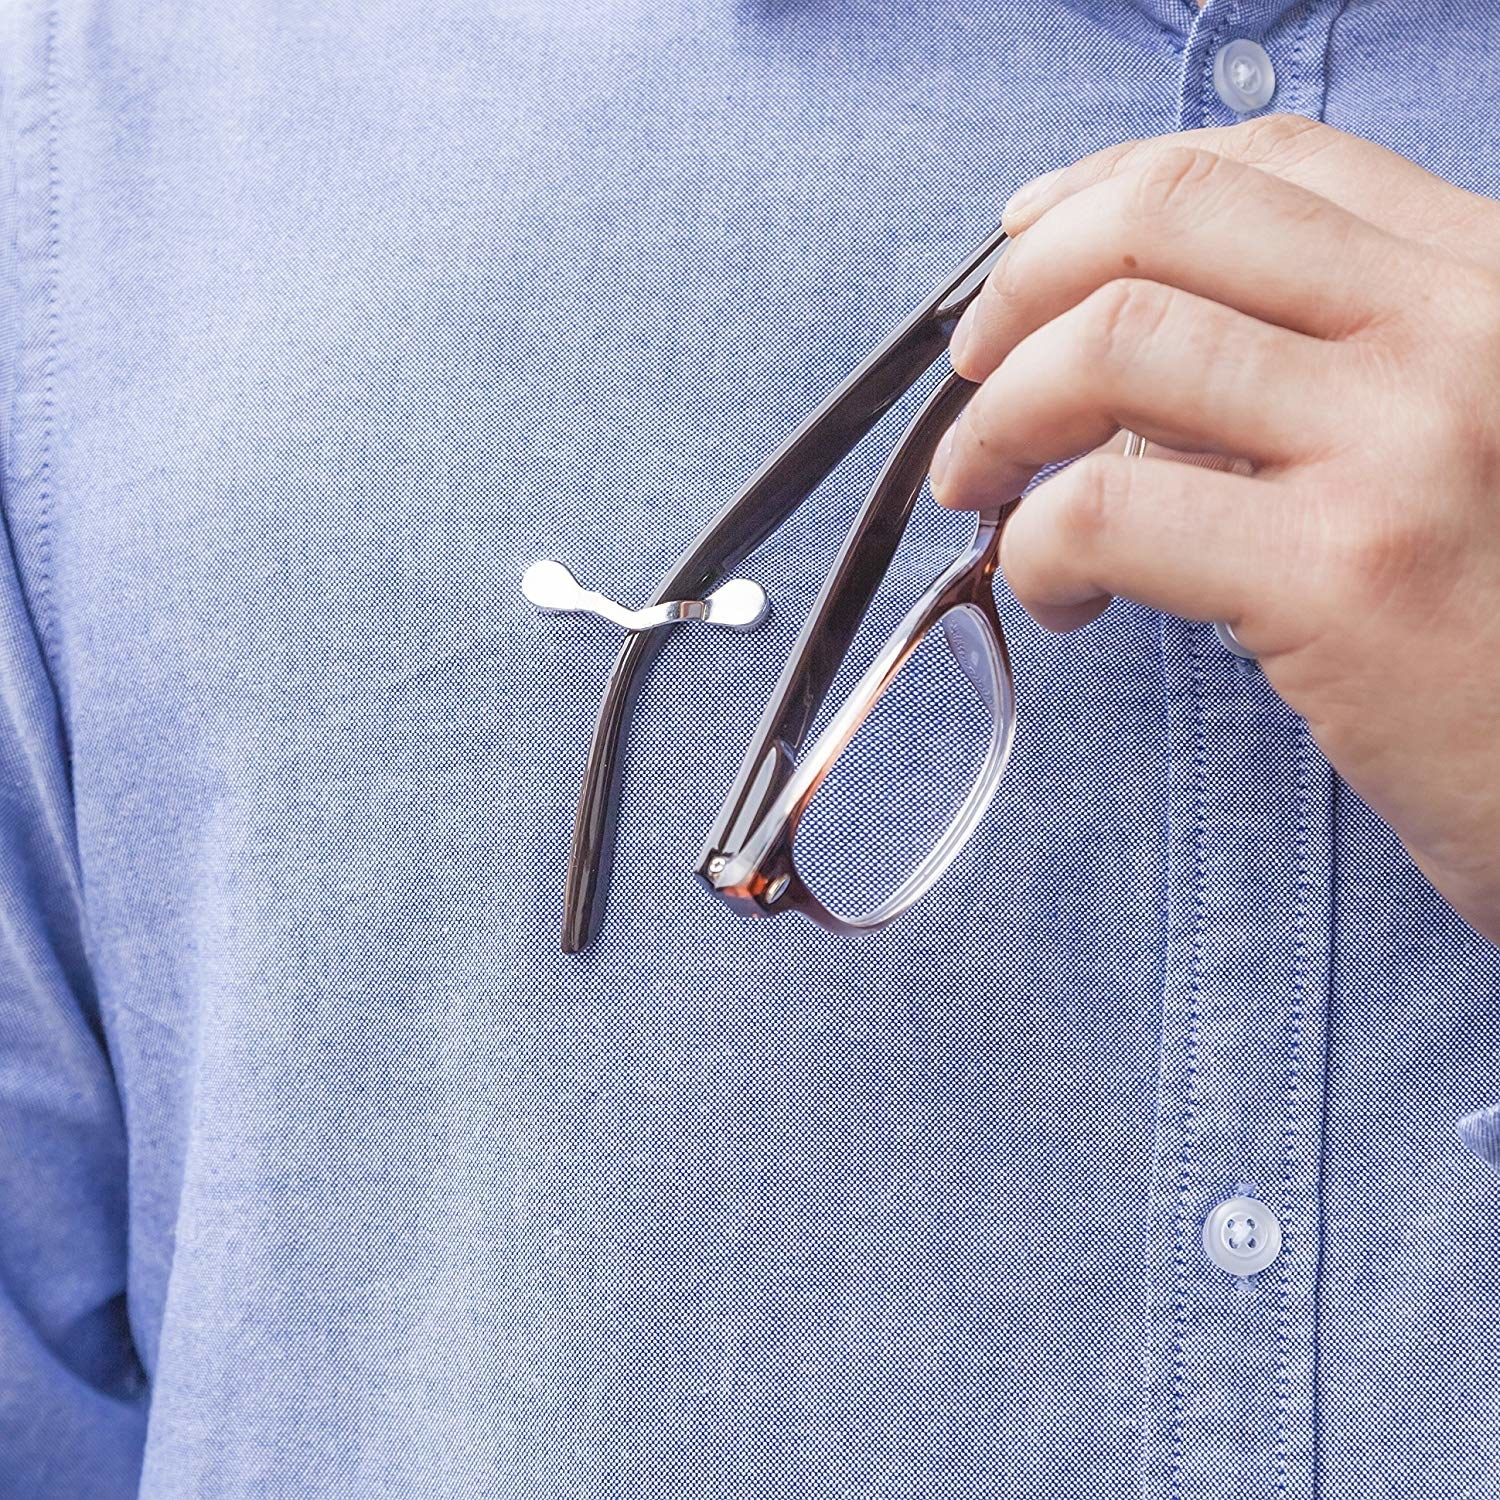 Model hooking their glasses through the holder on their shirt